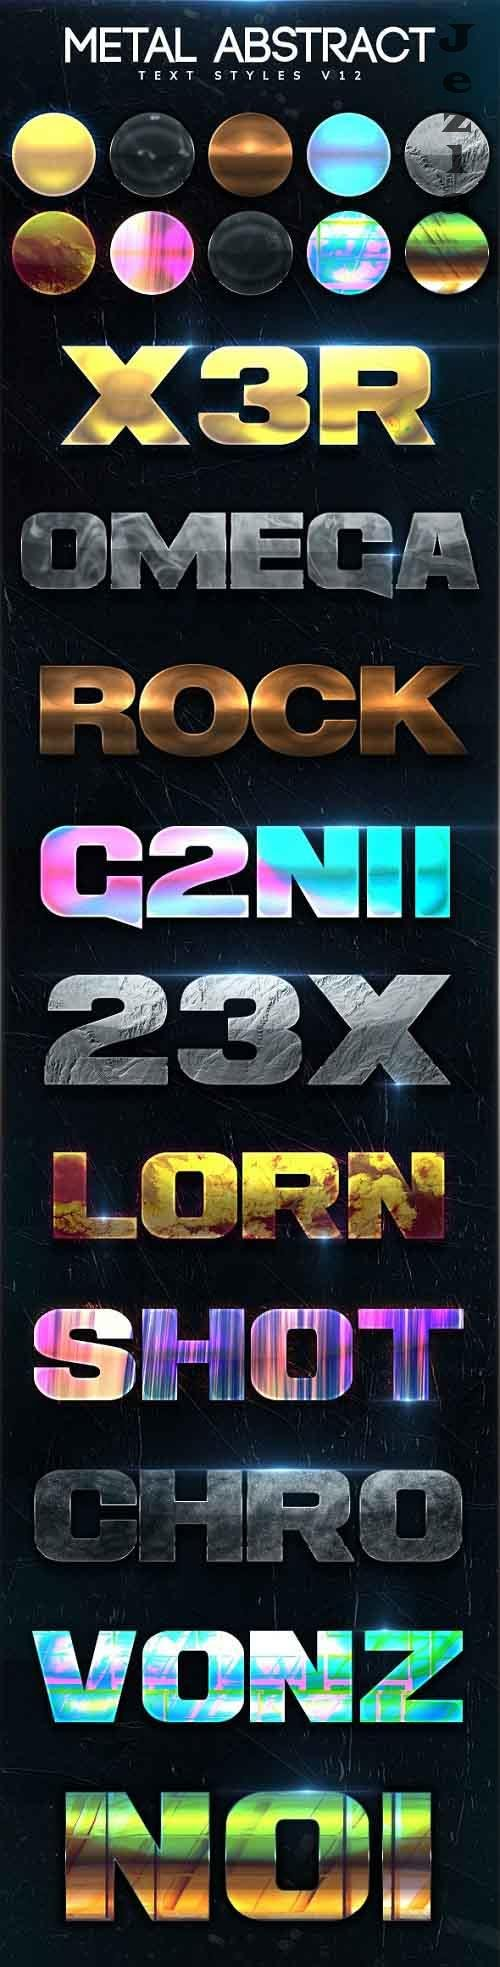 Metal Abstract Text Styles V12 27368604